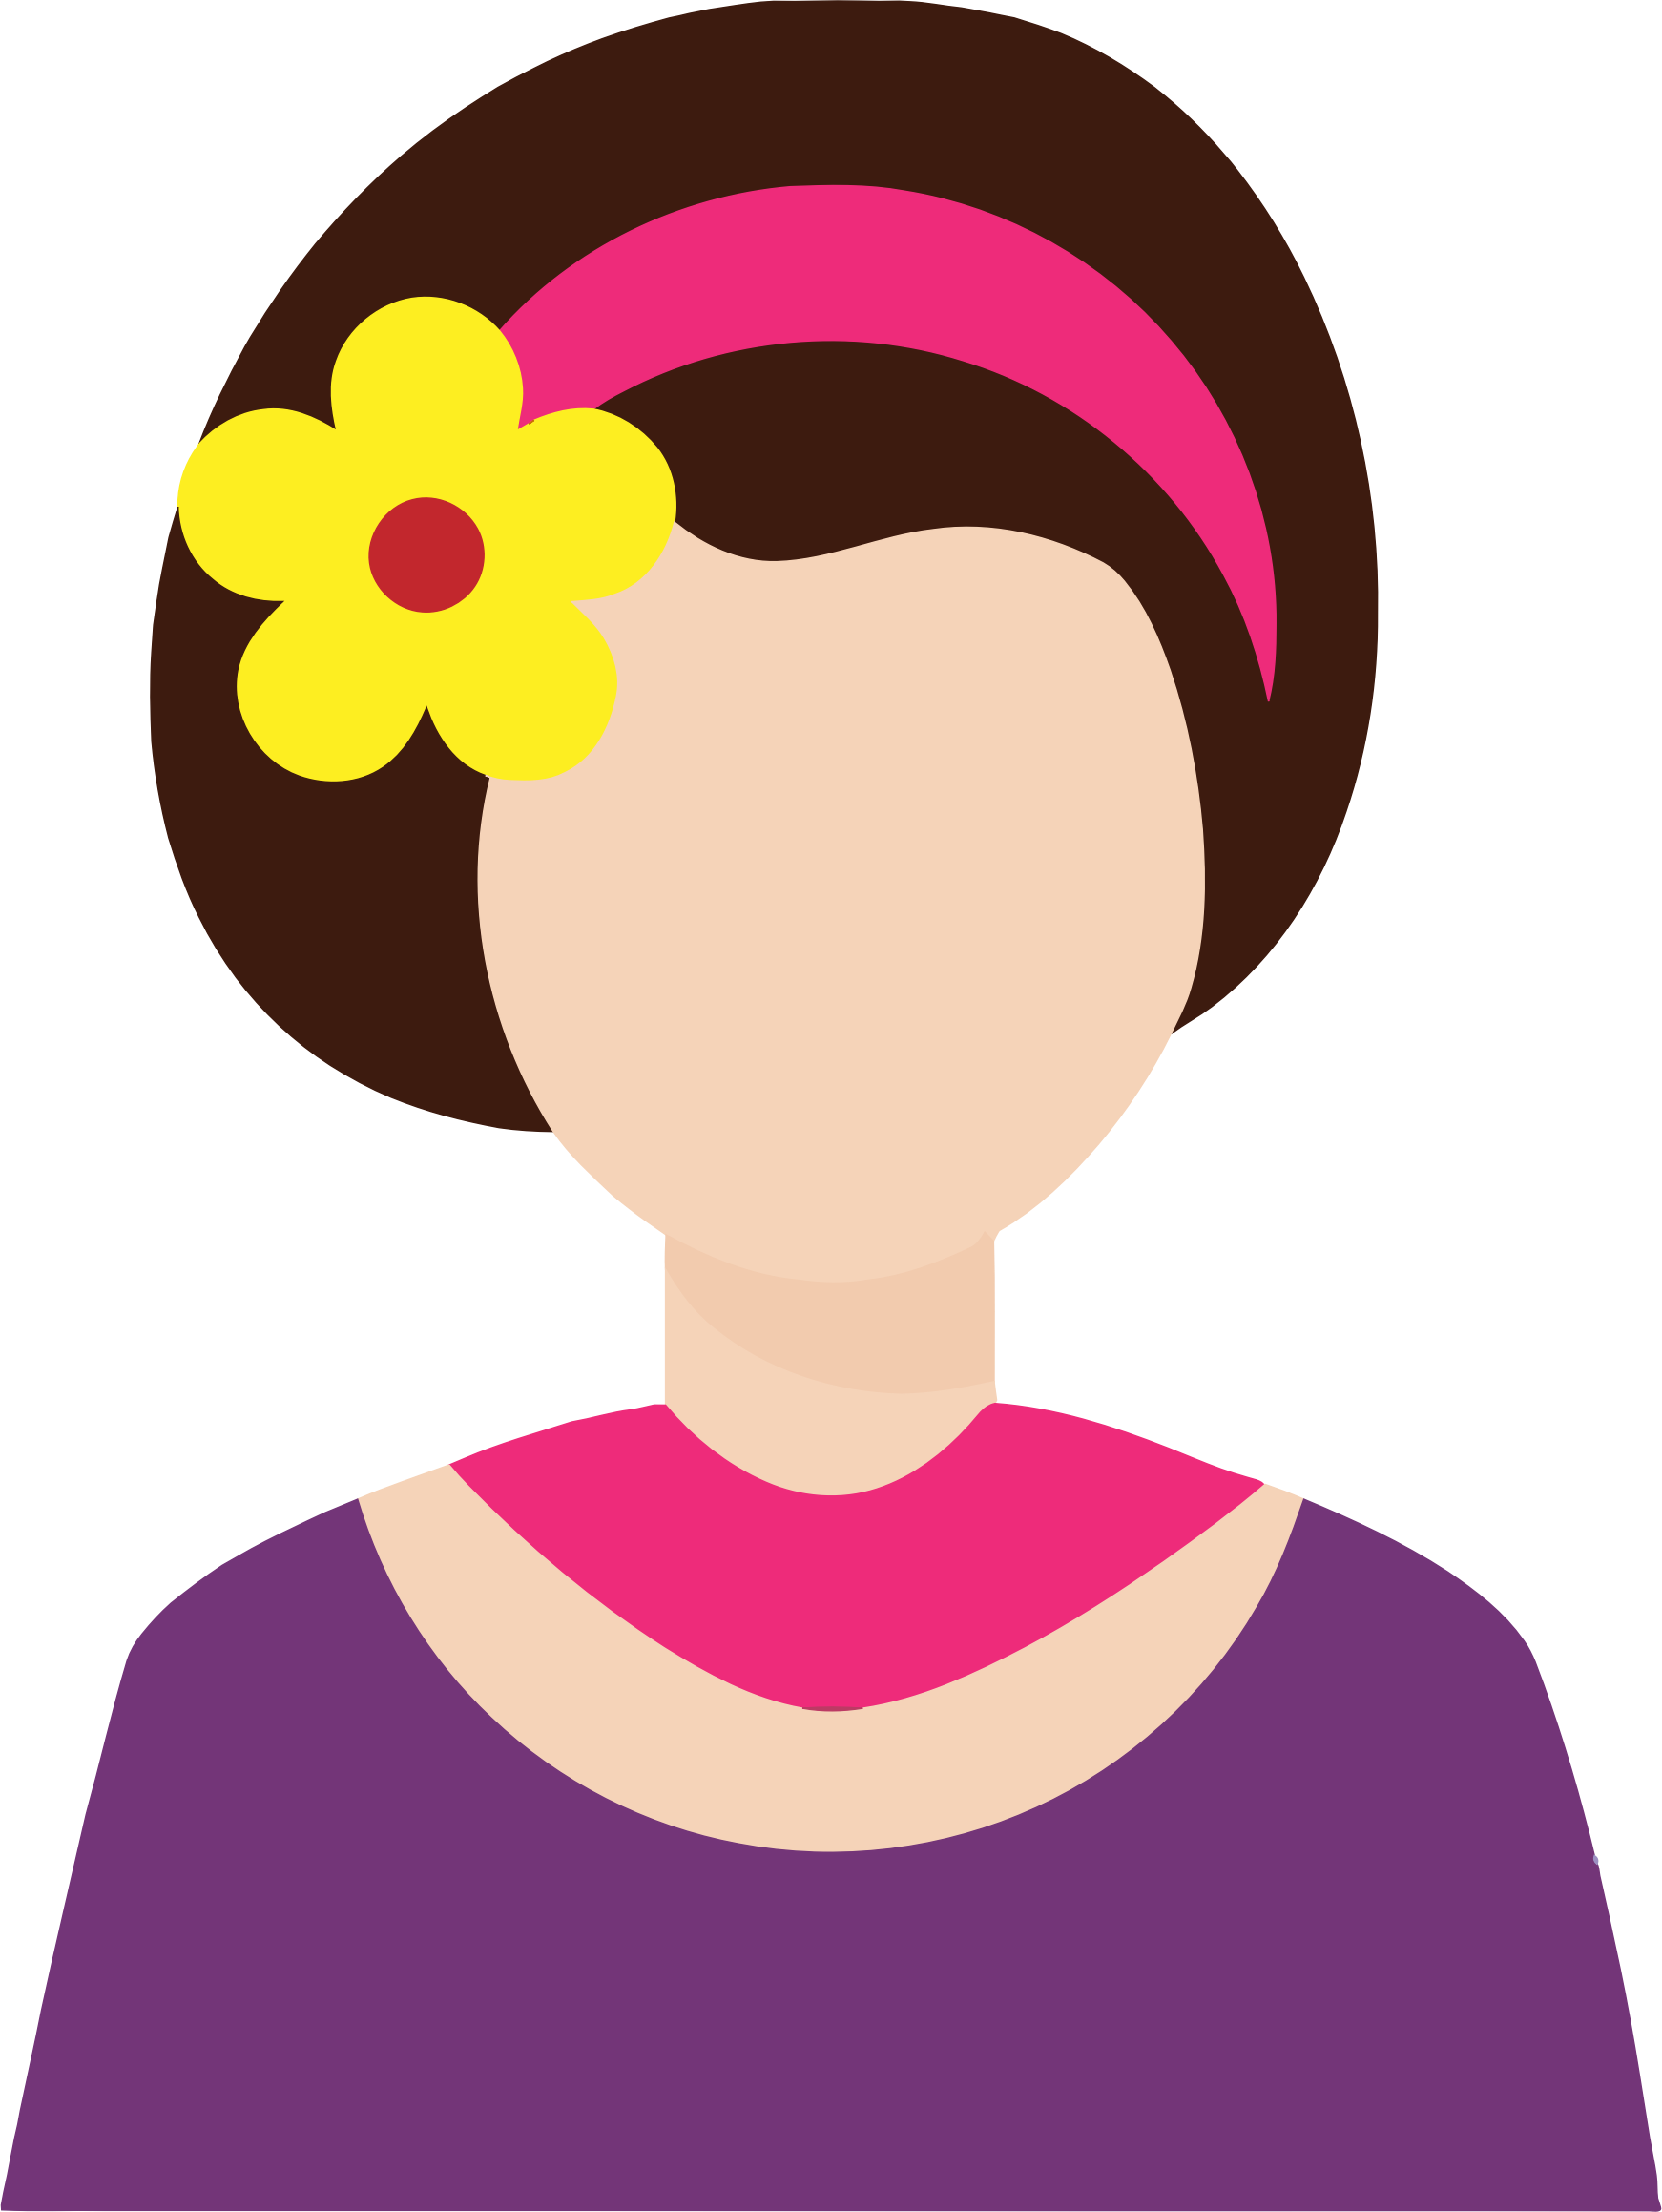 Female Avatar With Flower In Hair by GDJ